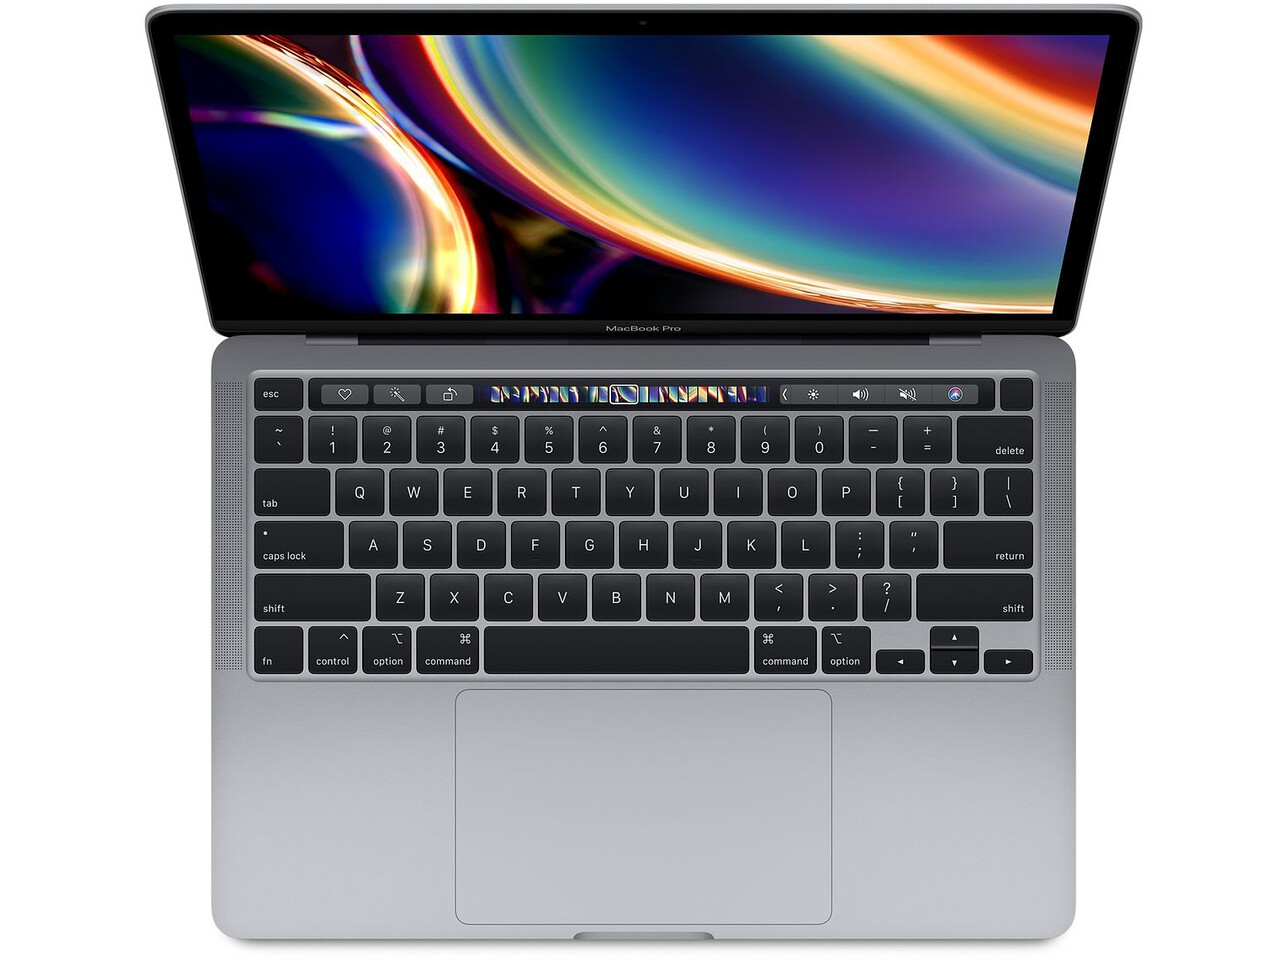 macbook pro 13 inch touch bar 2020 space gray